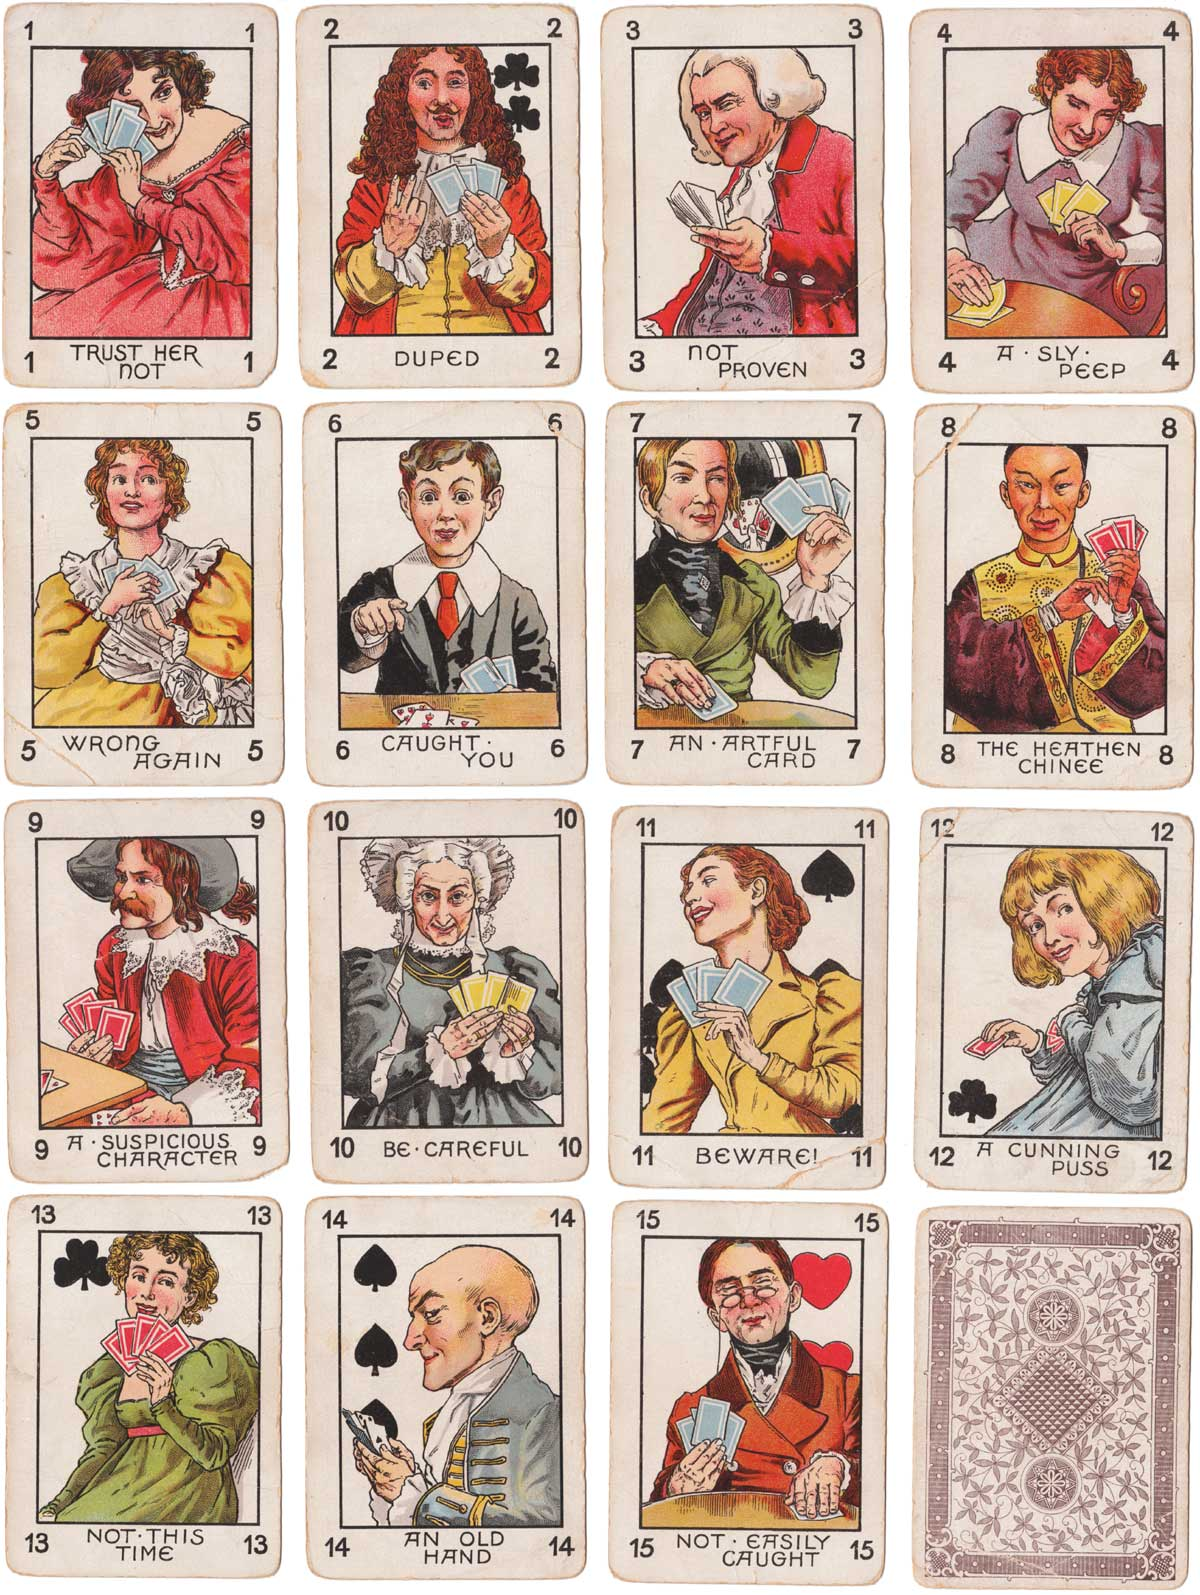 Bluffing published by Faulkner & Co, c.1896